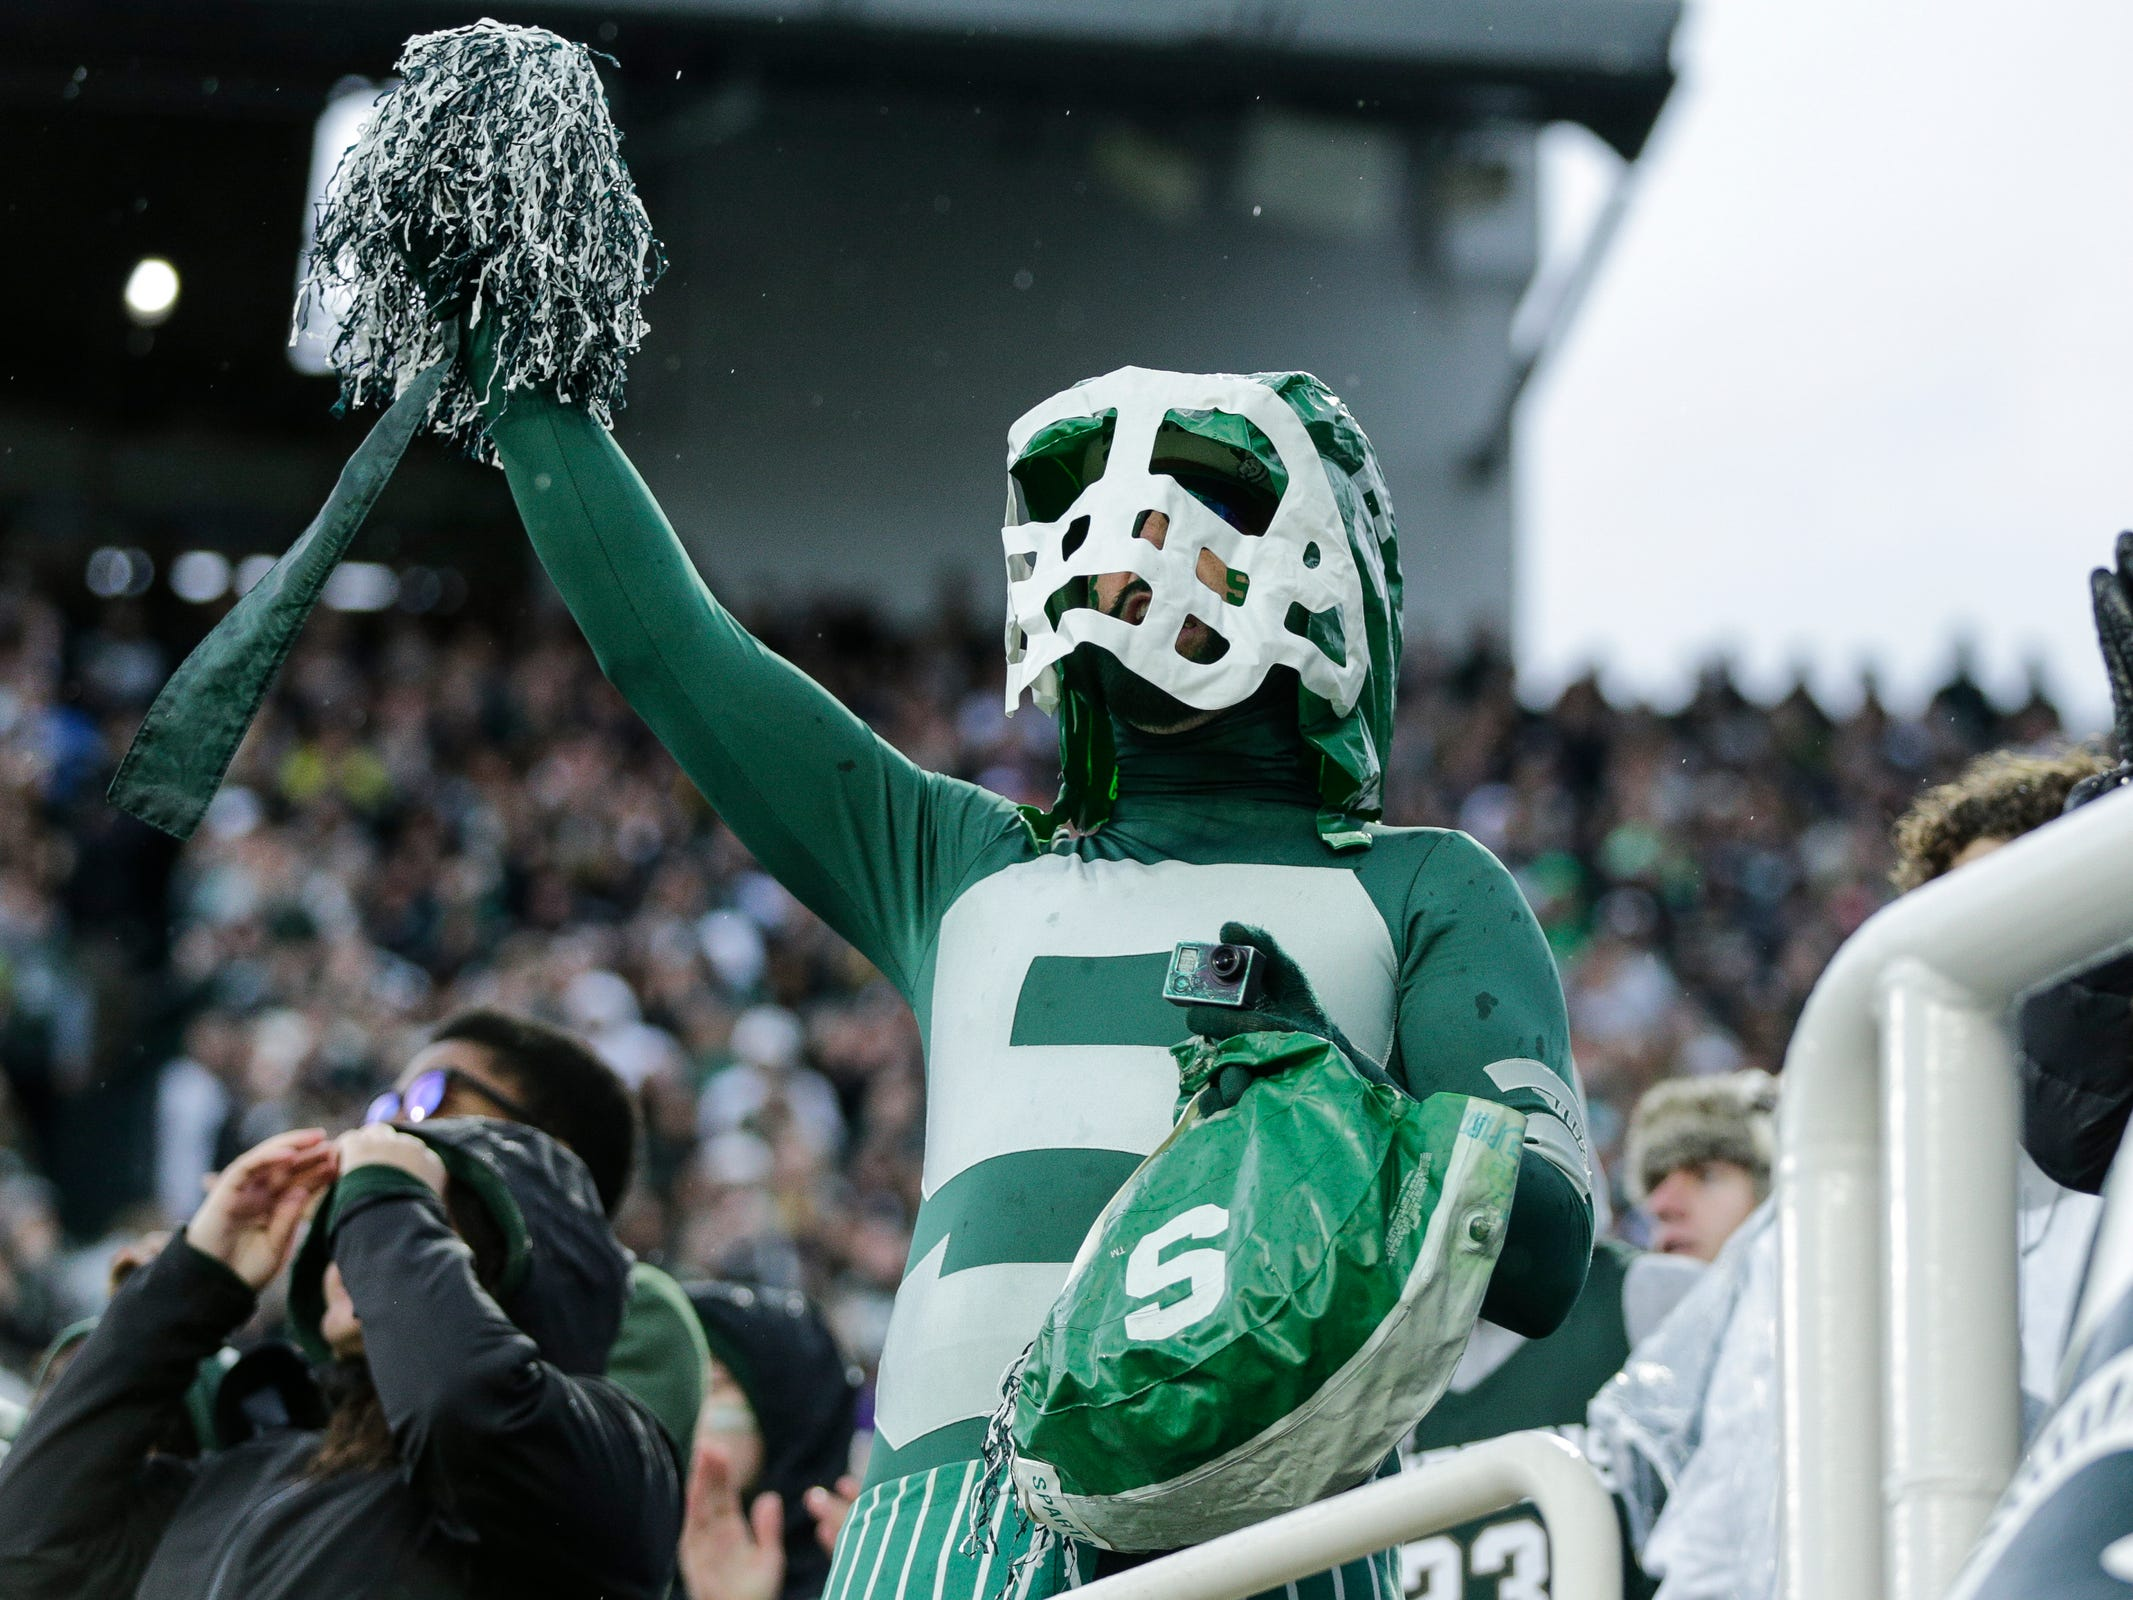 Michigan State fan Johnny Spirit celebrates a touchdown against Michigan during the second half at Spartan Stadium in East Lansing, Saturday, Oct. 20, 2018.